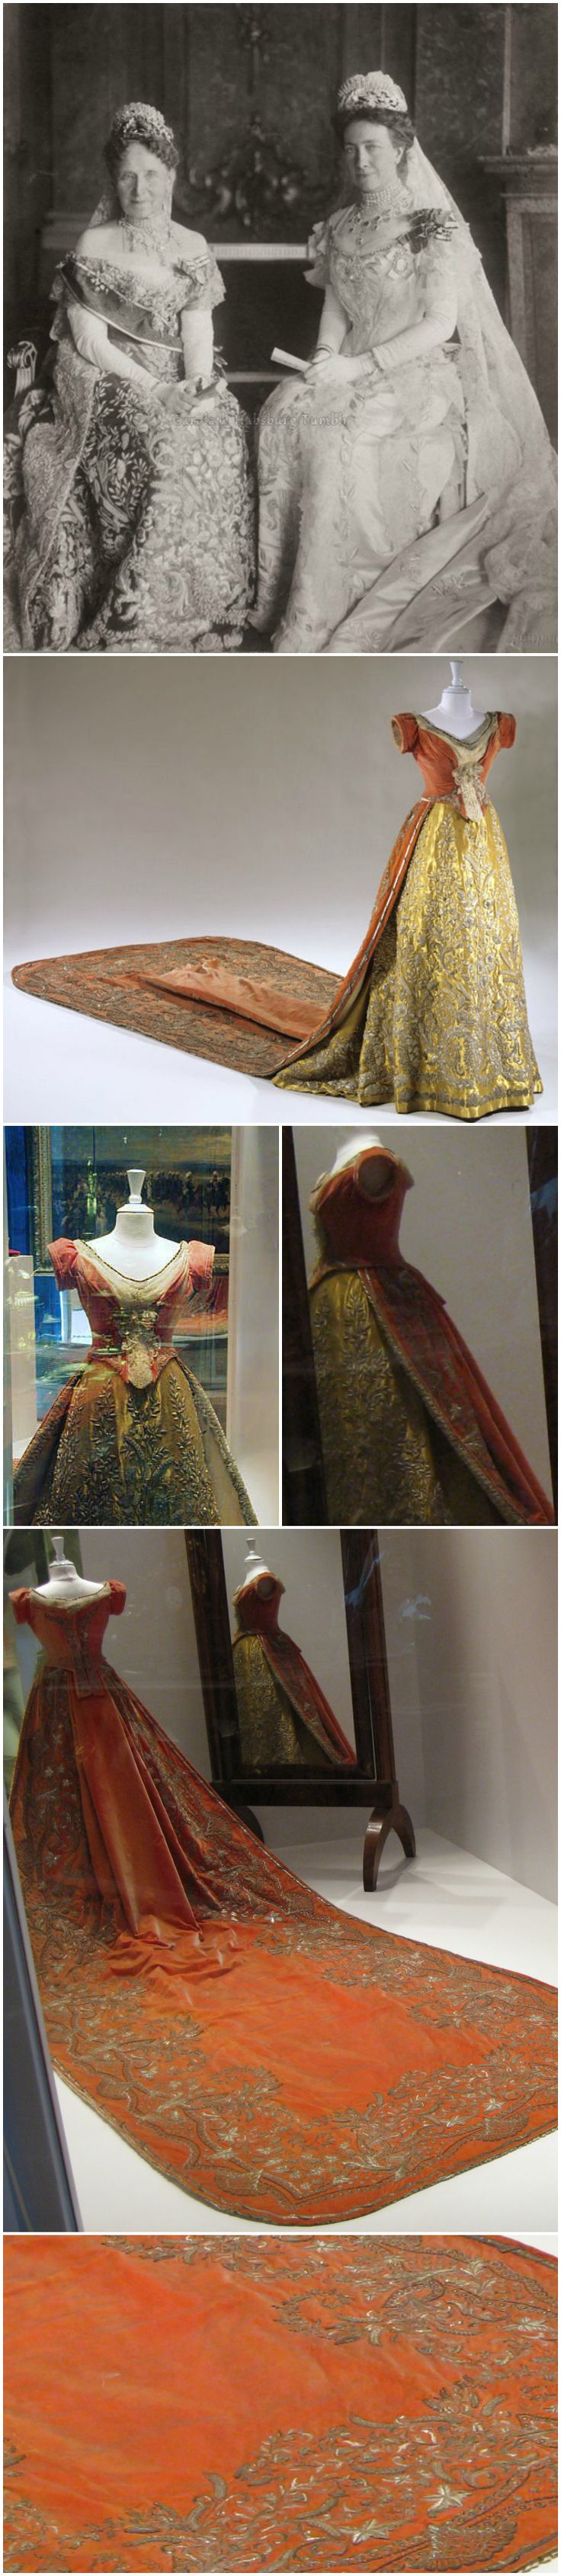 Court dress belonging to Grand Duchess Louise of Baden. Court train: 1856 (Berlin); skirt: 1870/80, bodice: 1880/1911 (Baden). Badisches Landesmuseum. Velvet, metal thread, silk fabric, gold lame. The grand duchess (pictured left with her daughter, Crown Princess Victoria of Sweden) wears a similar skirt in a 1900s photo courtesy of Carolath Habsburg Tumblr. Photos of the dress: Badisches Landesmuseum; Badische Heimat 2002 (via Badisches Landesmuseum on zum.de); Cheryl Hammond…